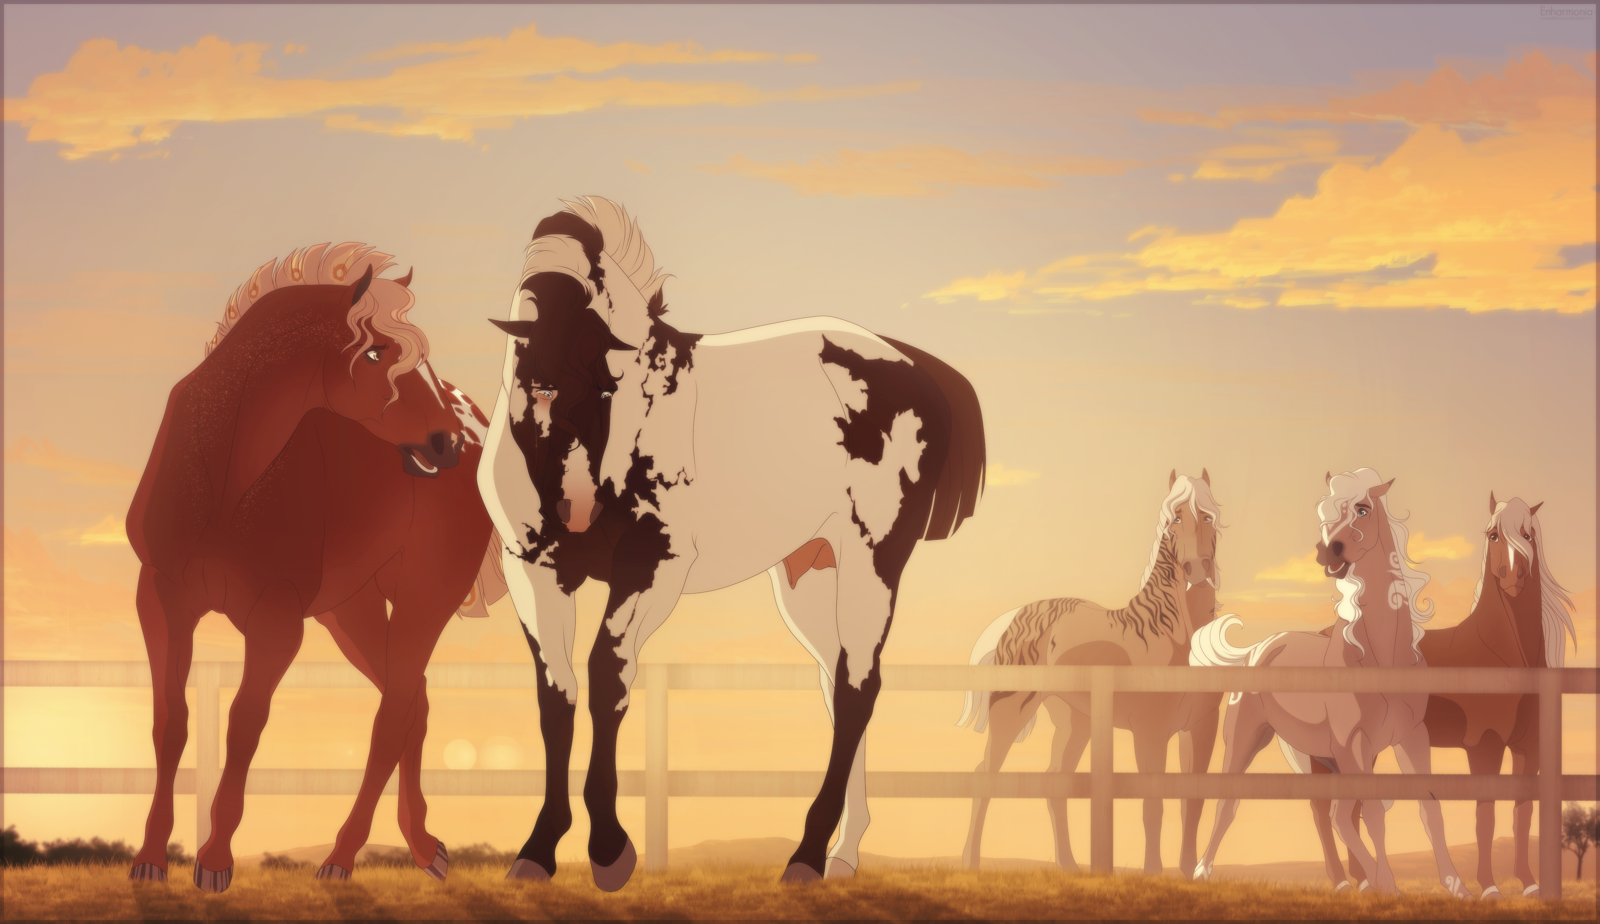 Deviantarts Robot Horse: List Of Synonyms And Antonyms Of The Word: Deviantart Horses